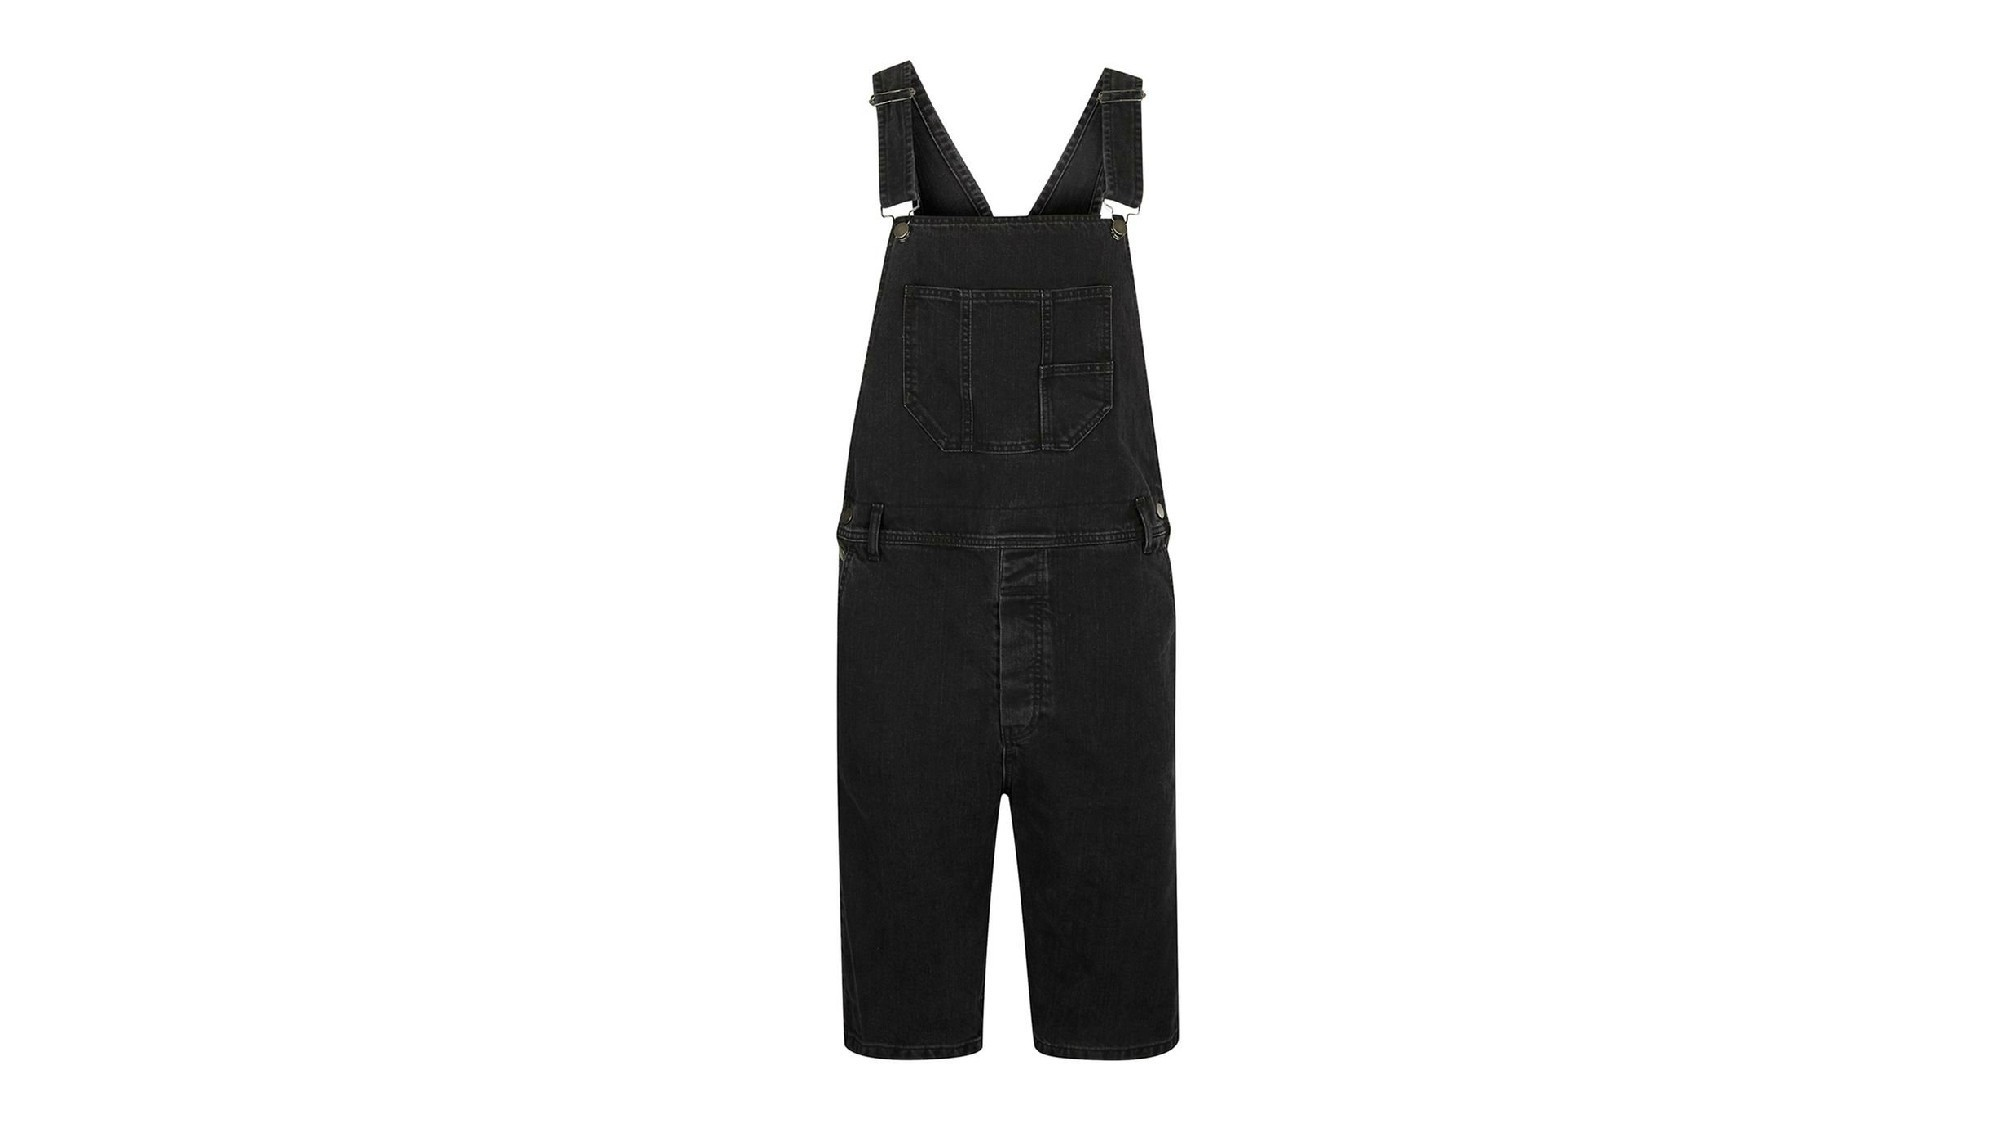 Topman black denim short overalls.